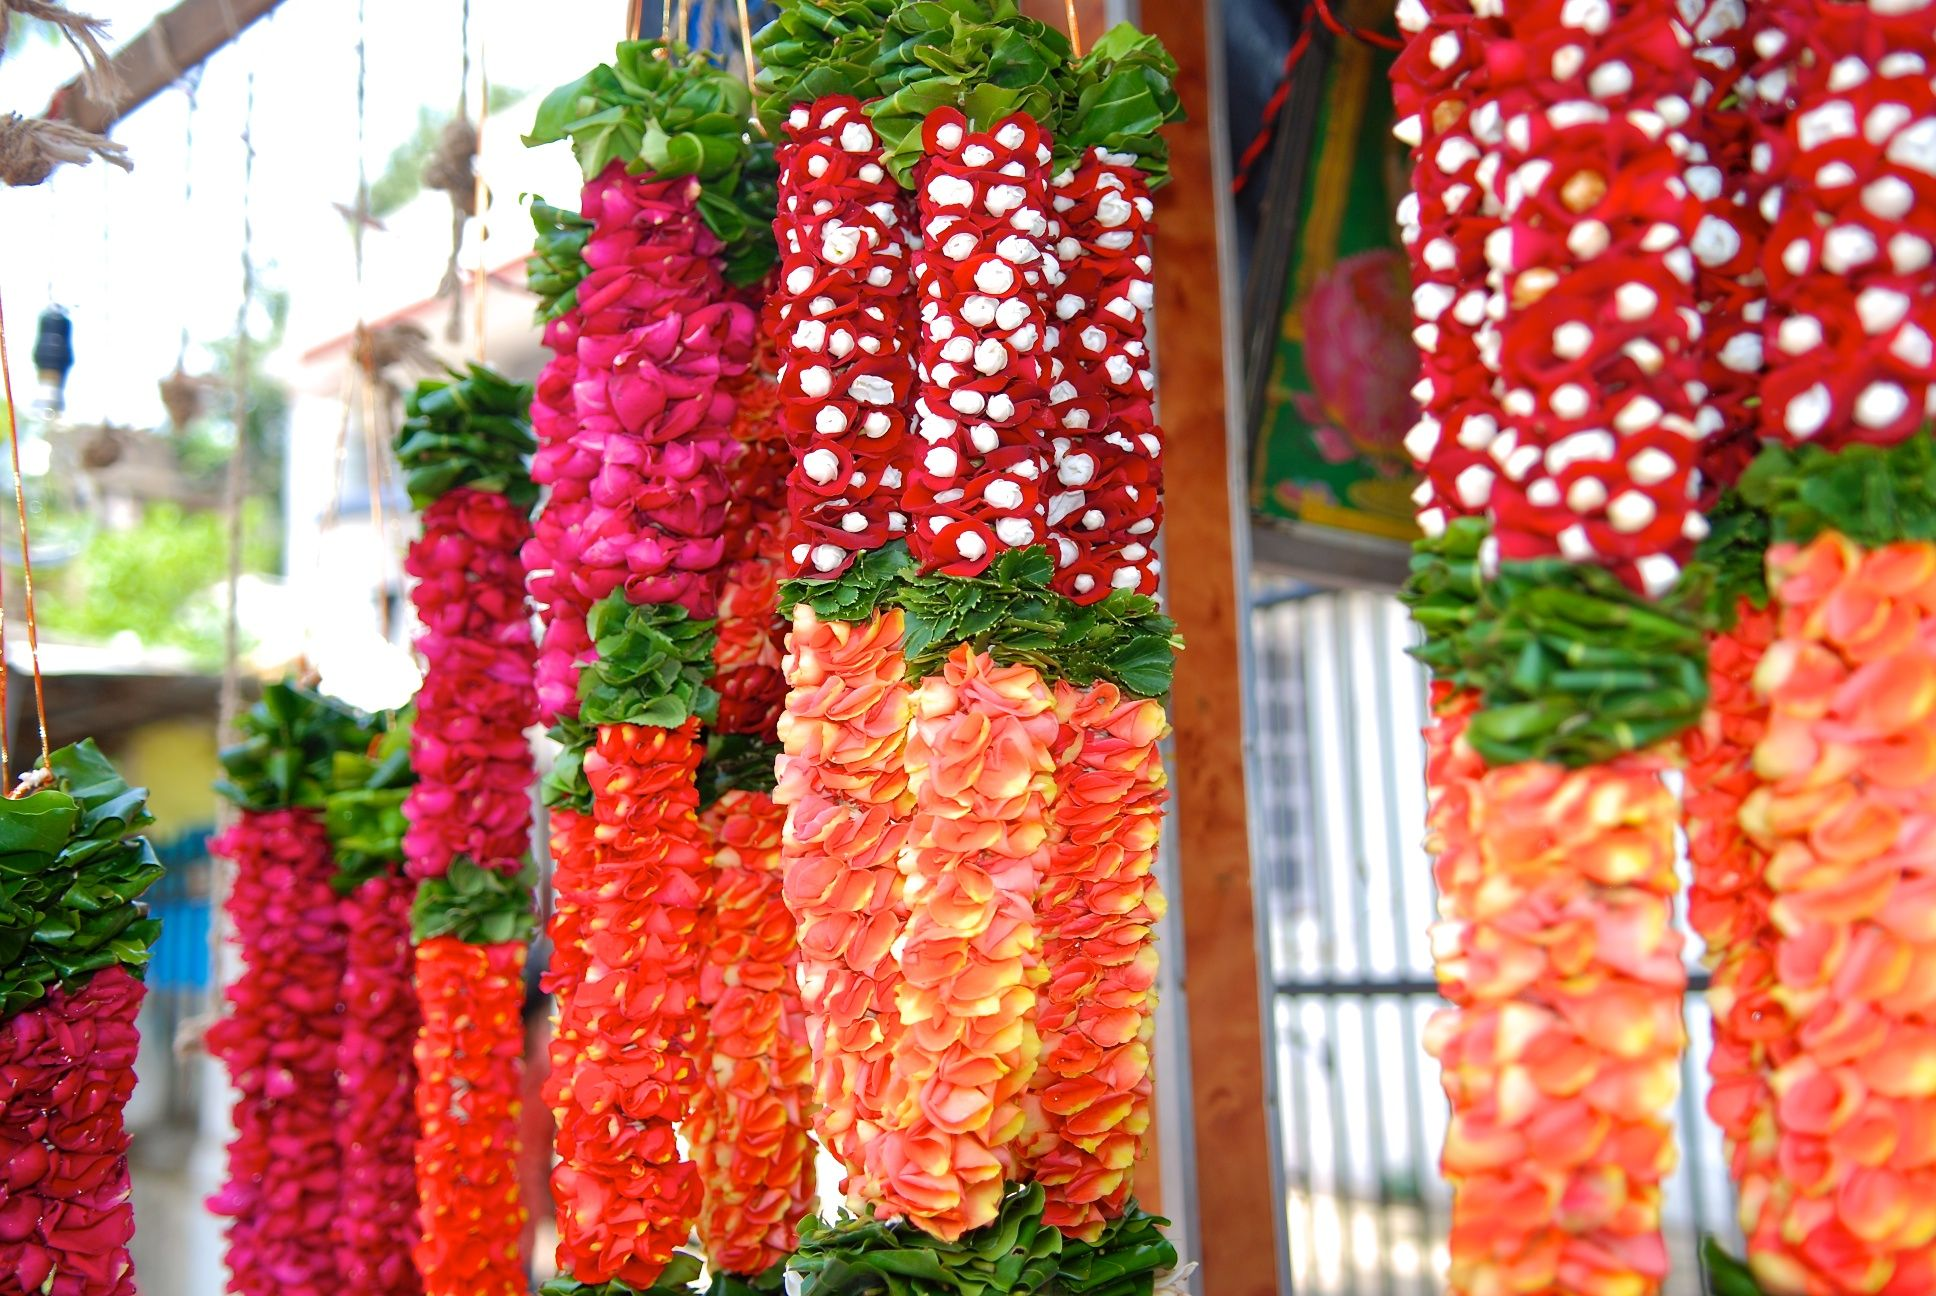 Mehndi Flower Garlands : Let s pick up some flowers at the matunga flower market